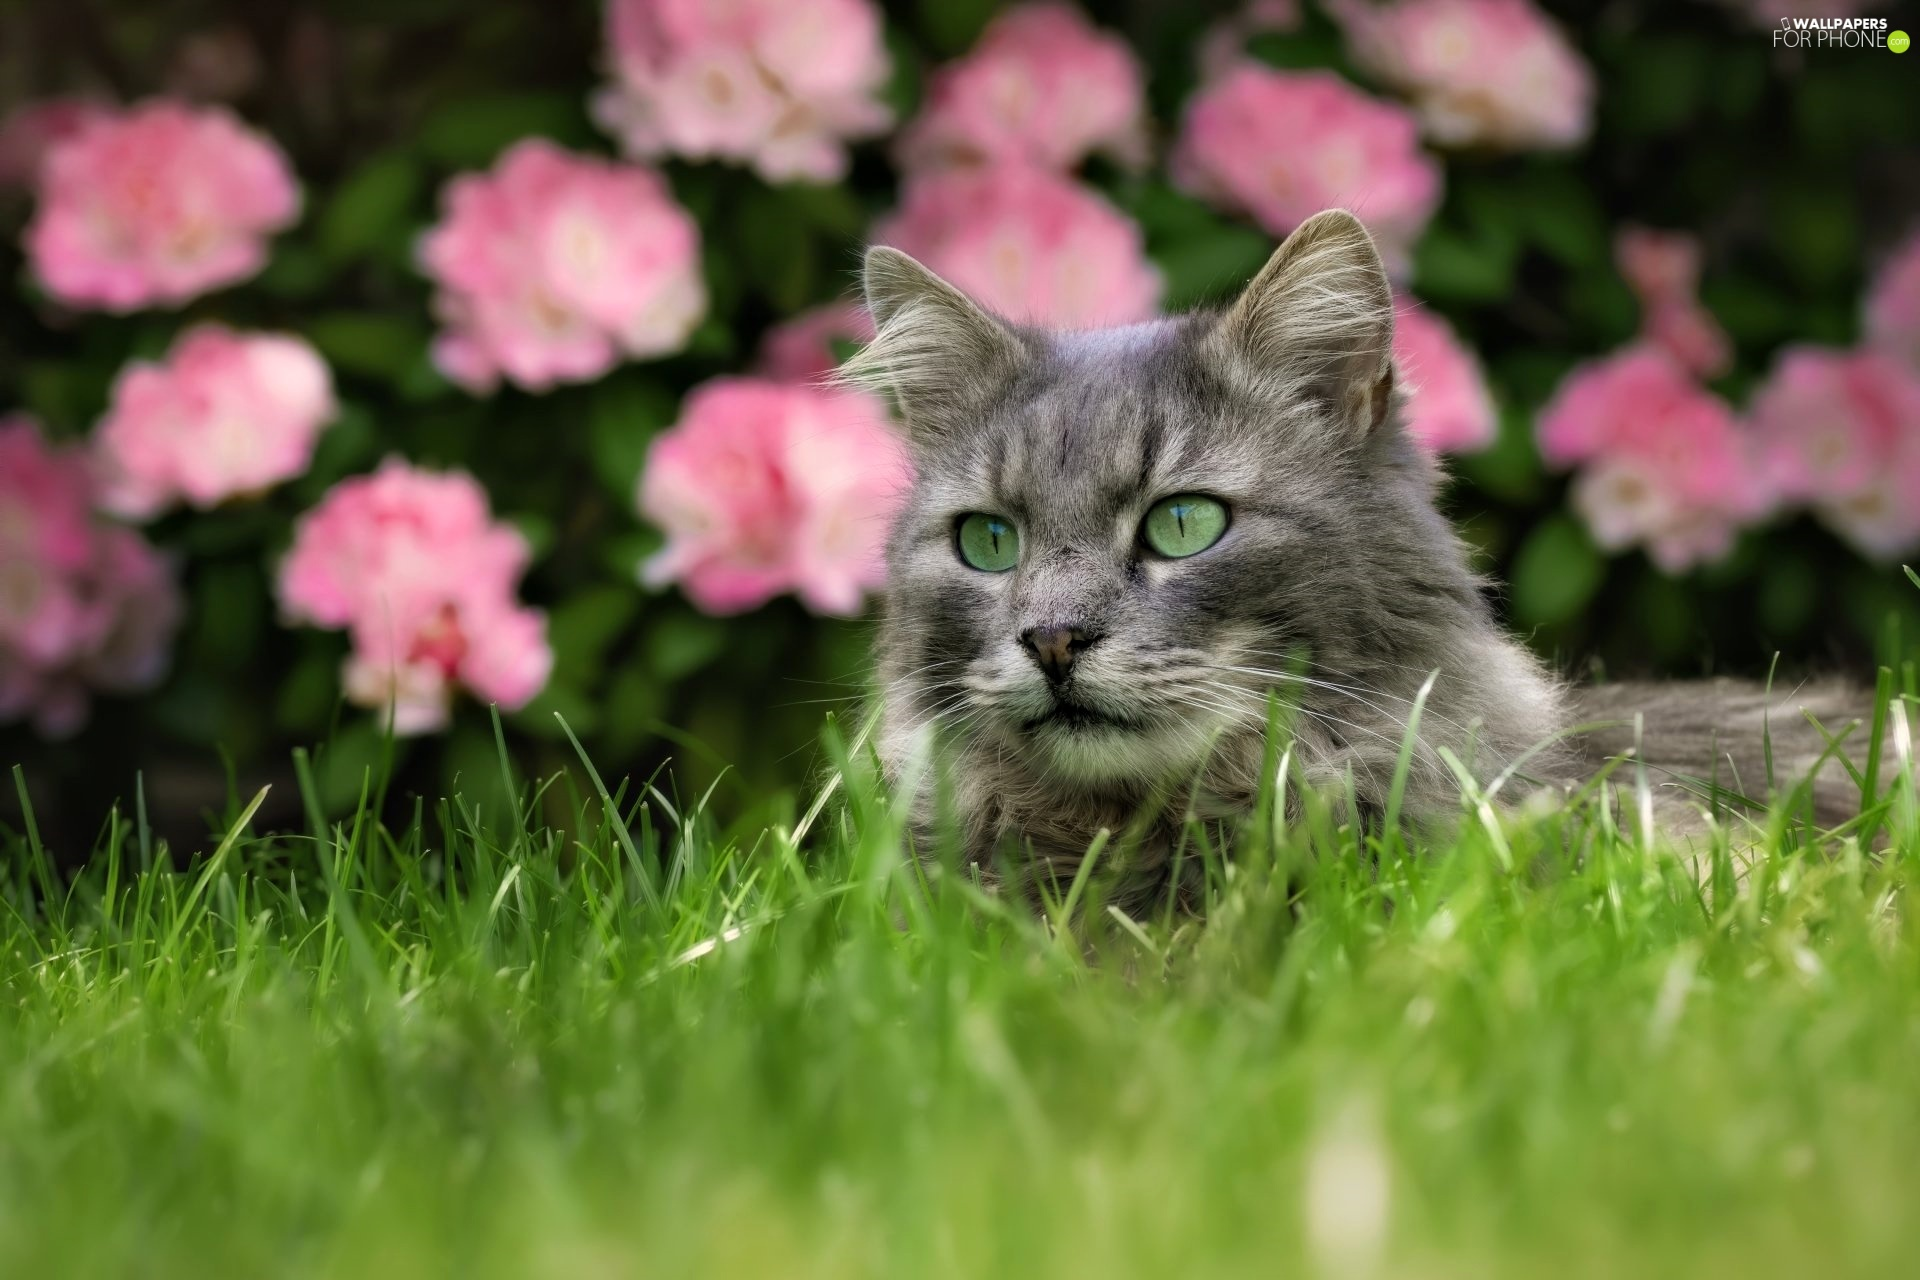 Flowers, blurry background, cat, grass, Gray